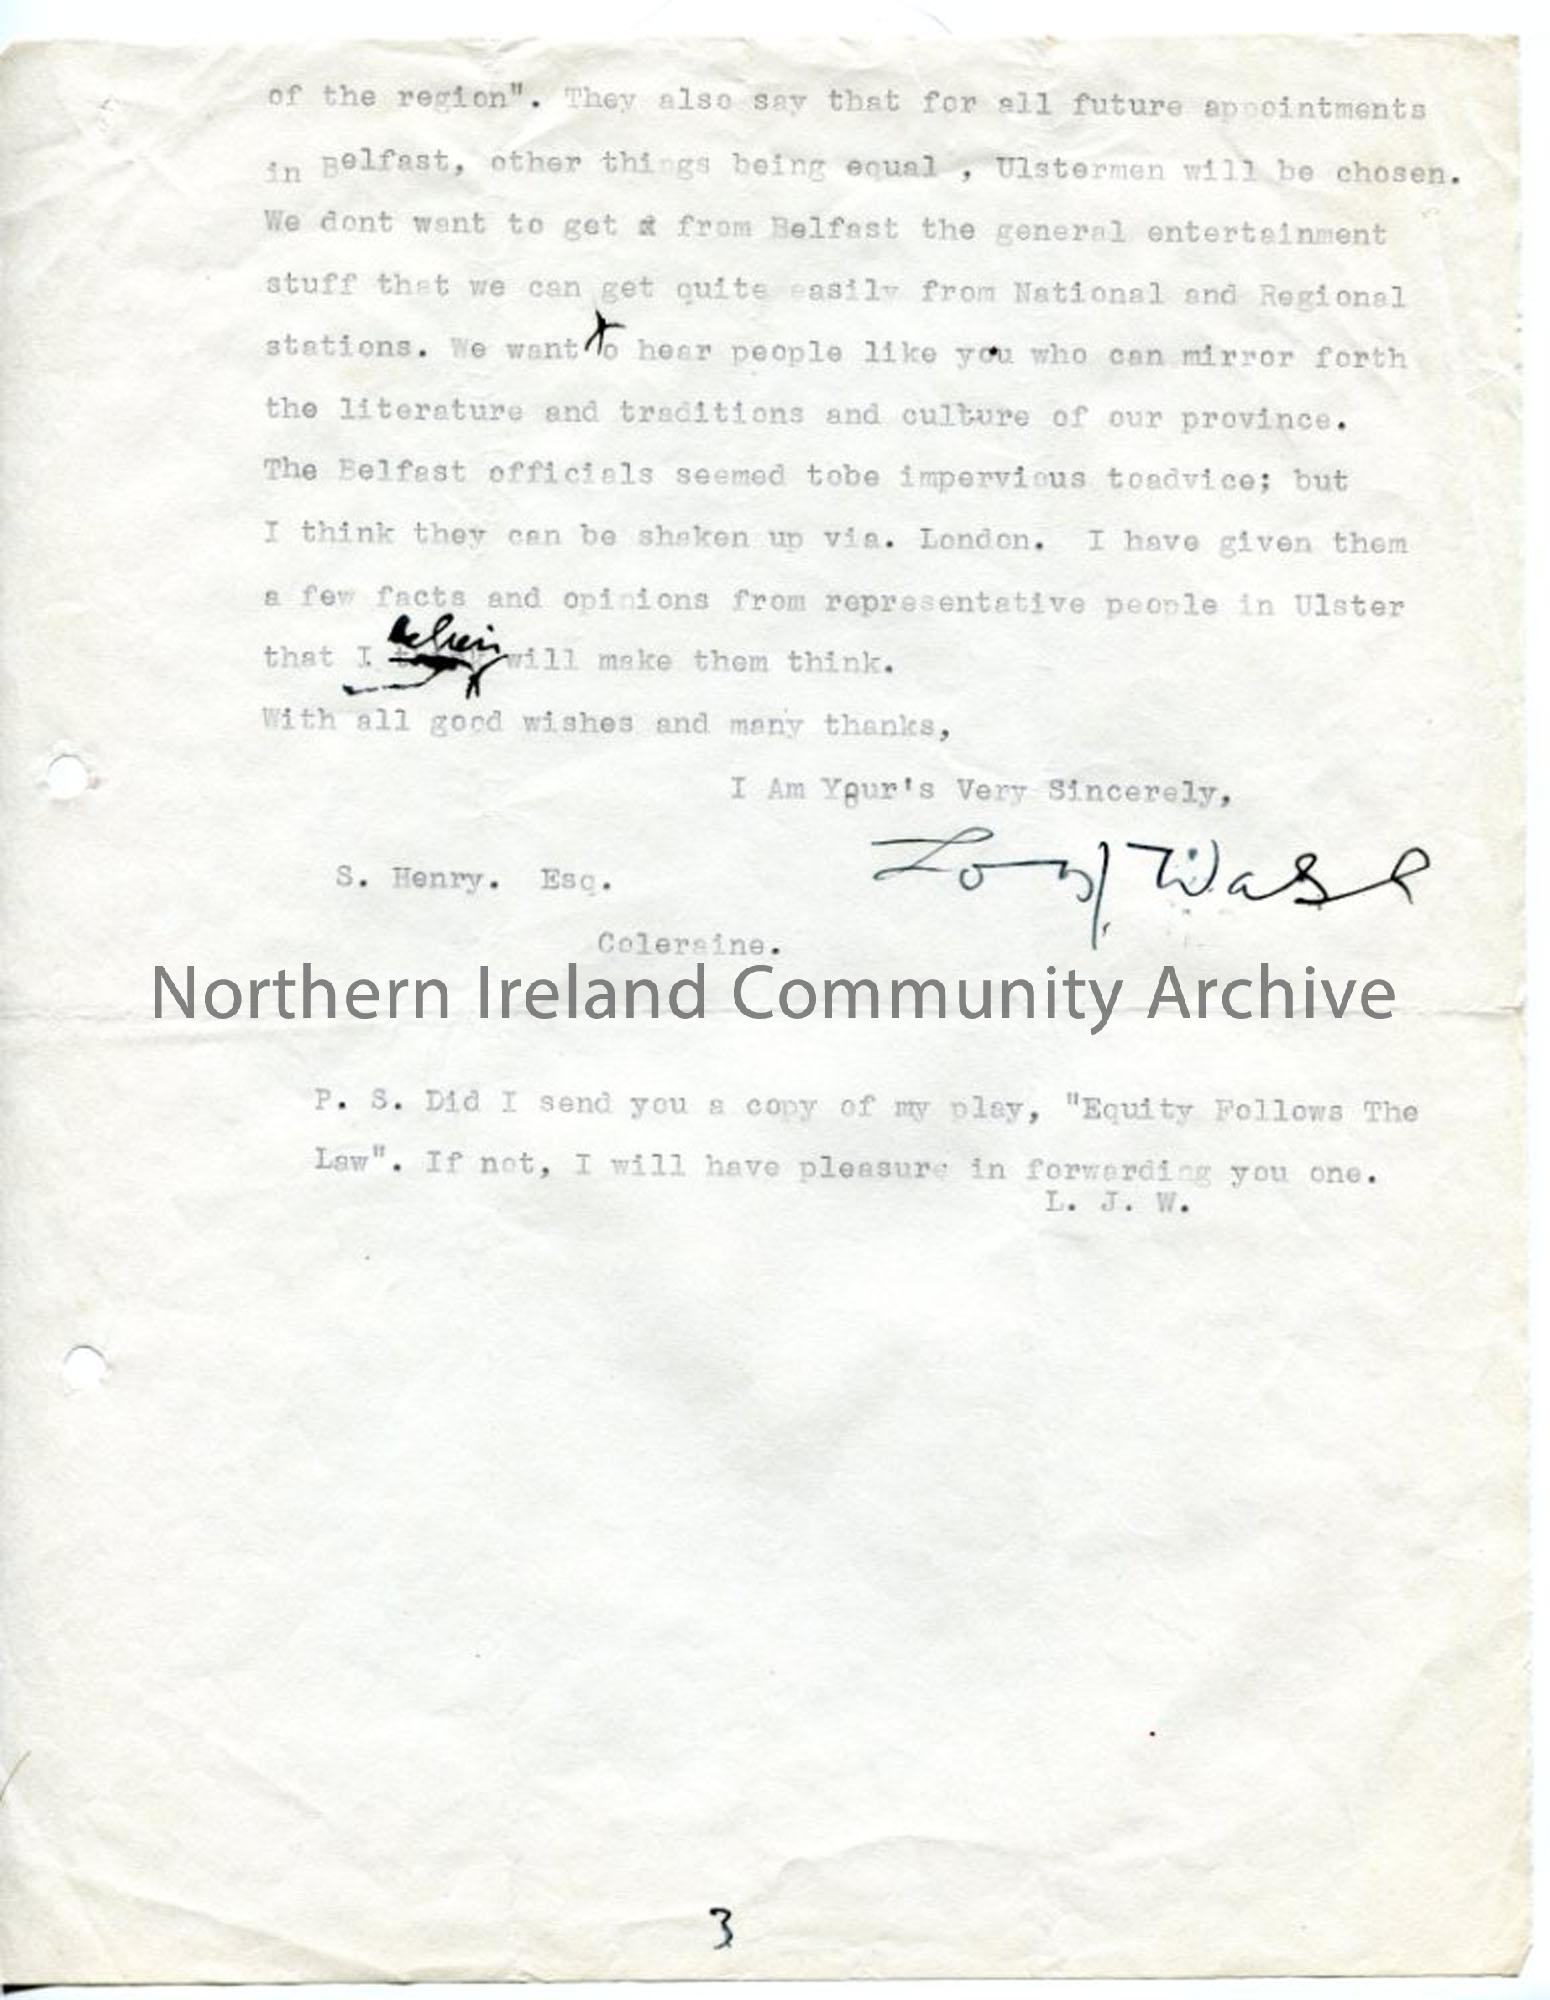 Page 3 of 3: Letter from Louis Walsh, 31.8.1937